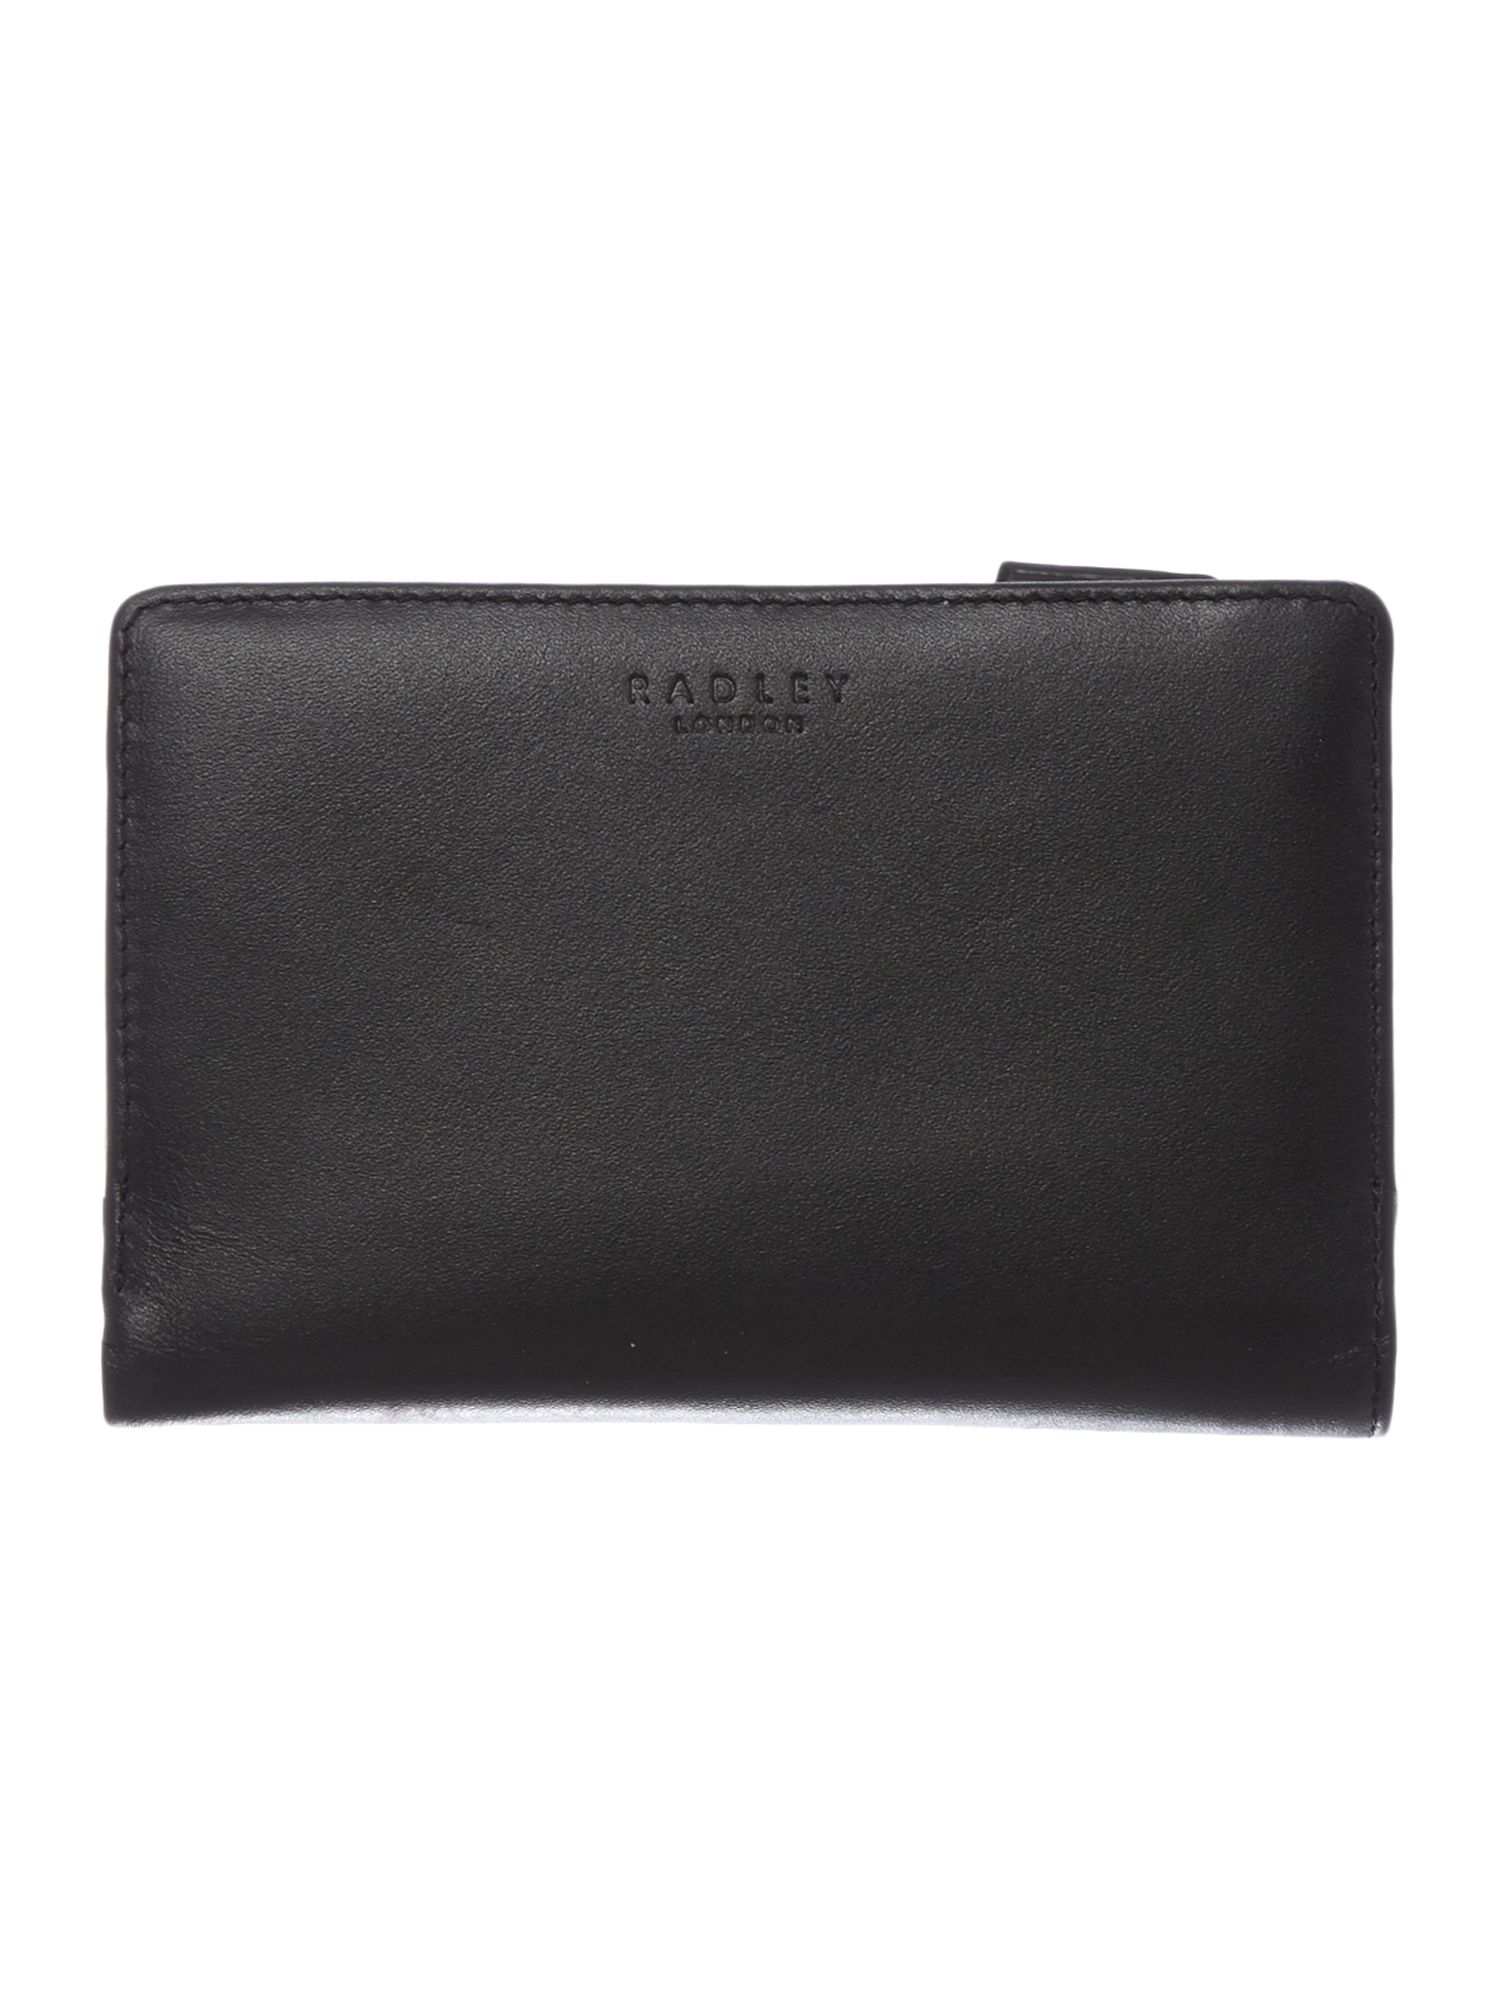 Radley express black medium zip around purse